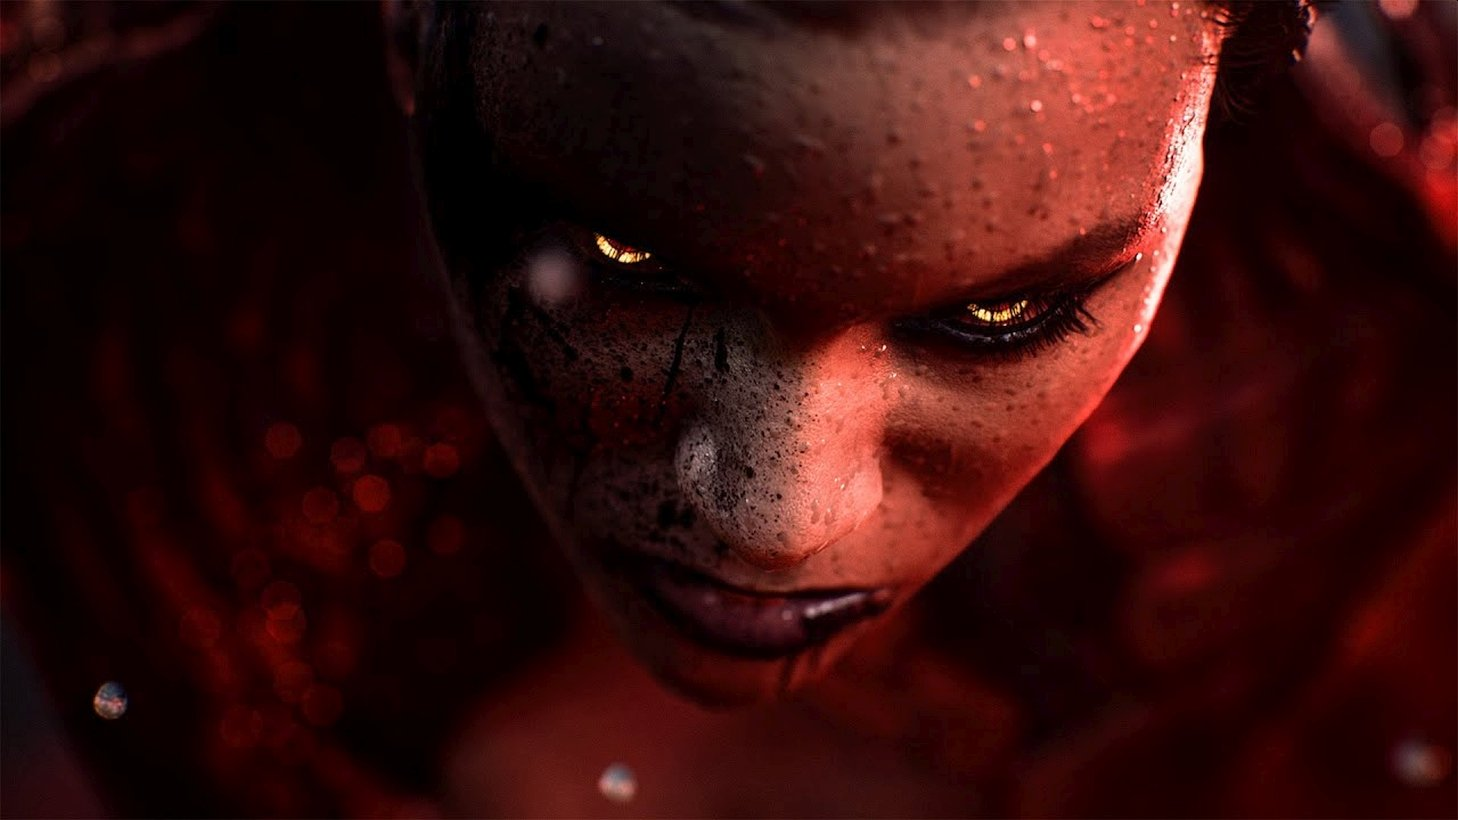 Vampire: The Masquerade Battle Royale Game Currently In Development